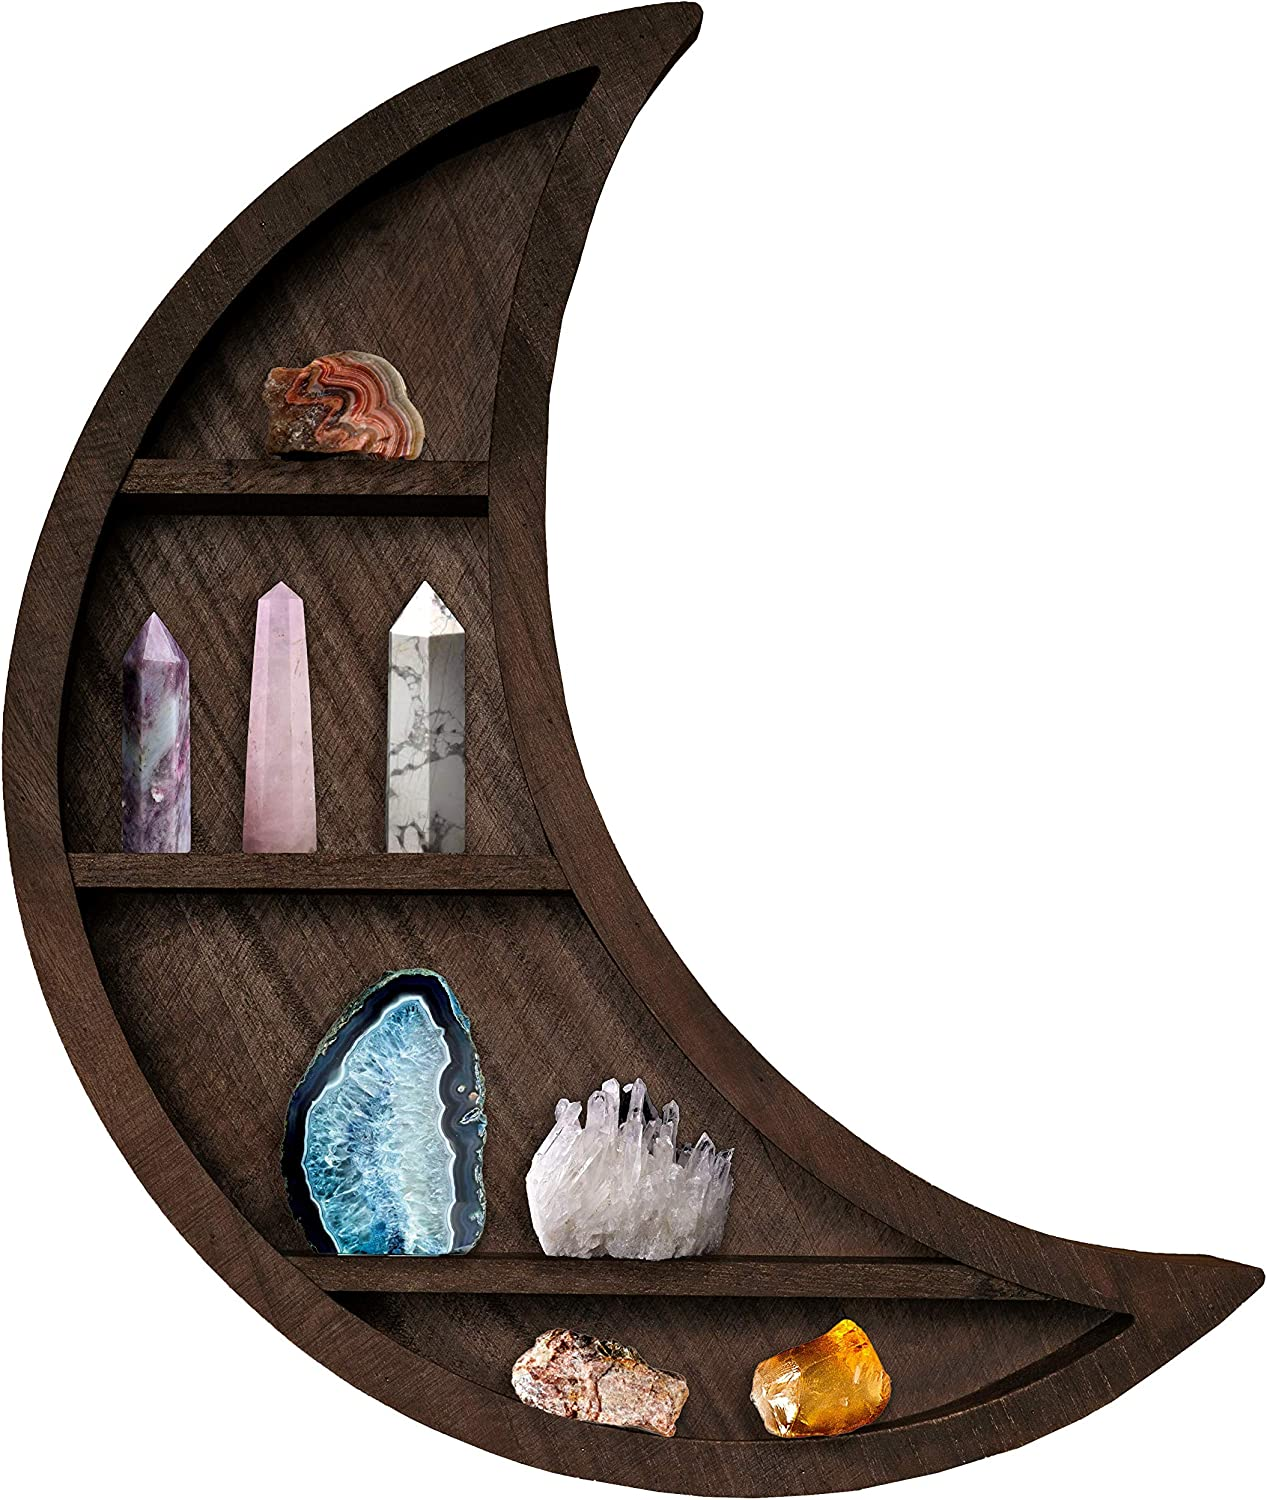 Wooden Crescent Moon Shelf for Crystals - Crystal Shelf Display Moon Wall Decor - 4 Tier Wall Mounted Floating Shelves - Wall Storage Shelves for Bedroom Living Room Bathroom Kitchen